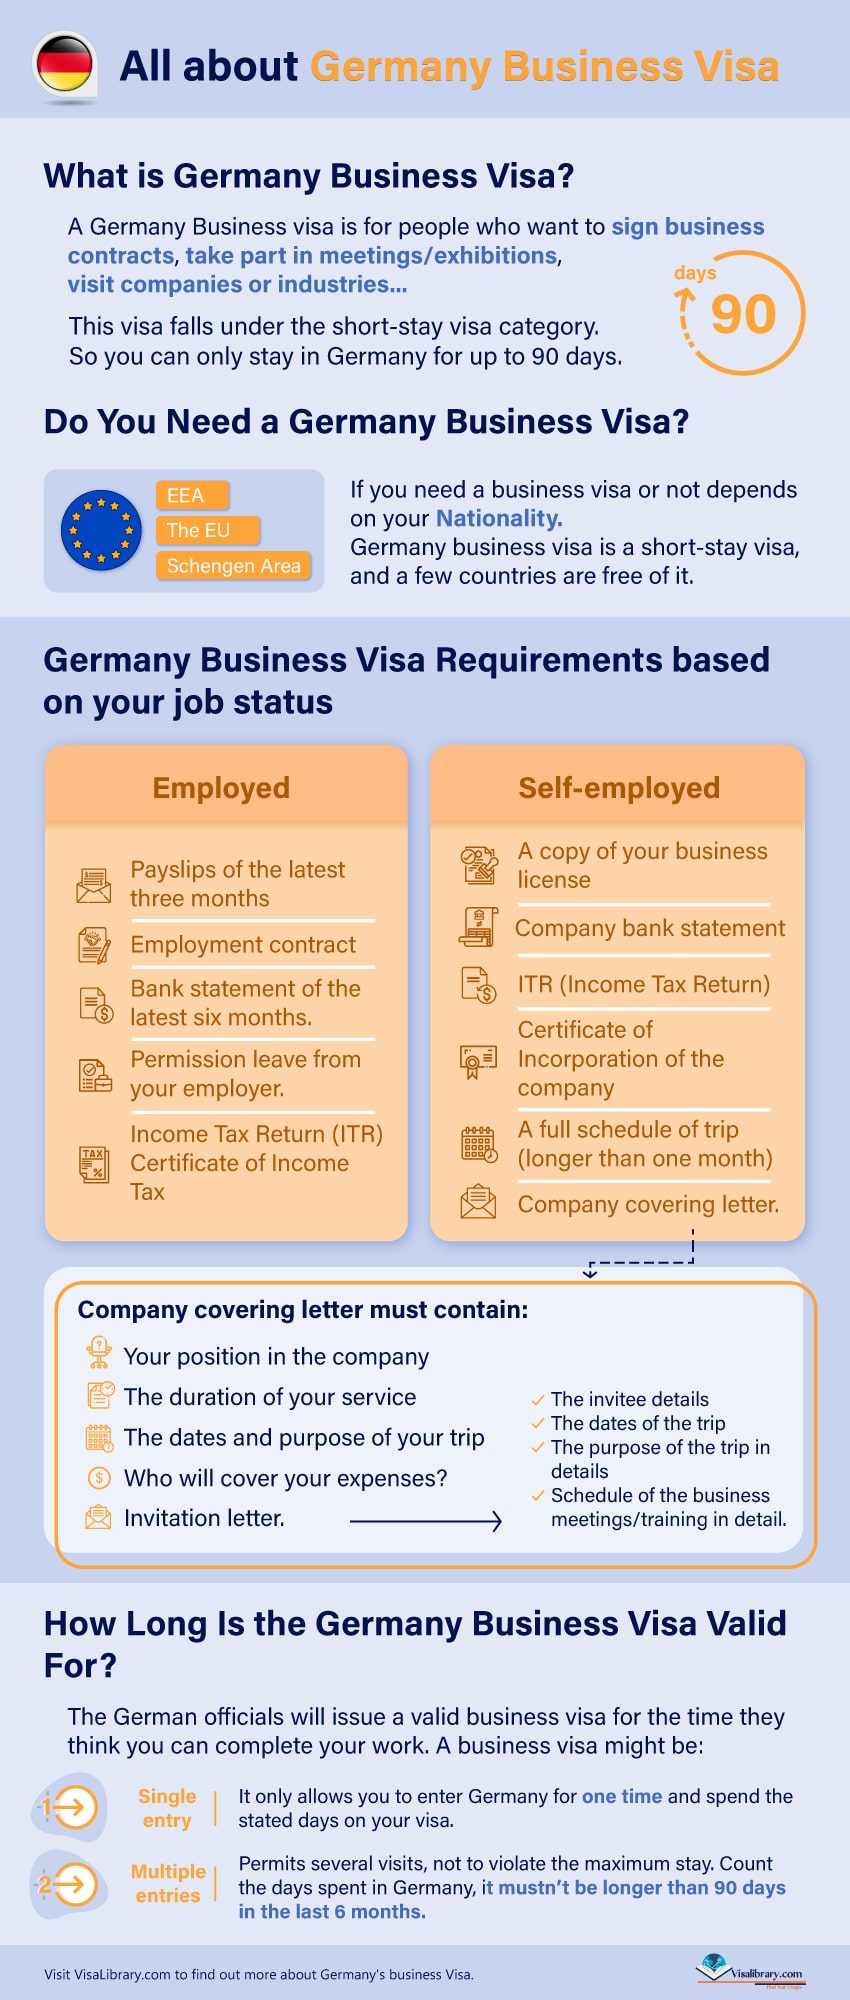 All about Germany Business Visa